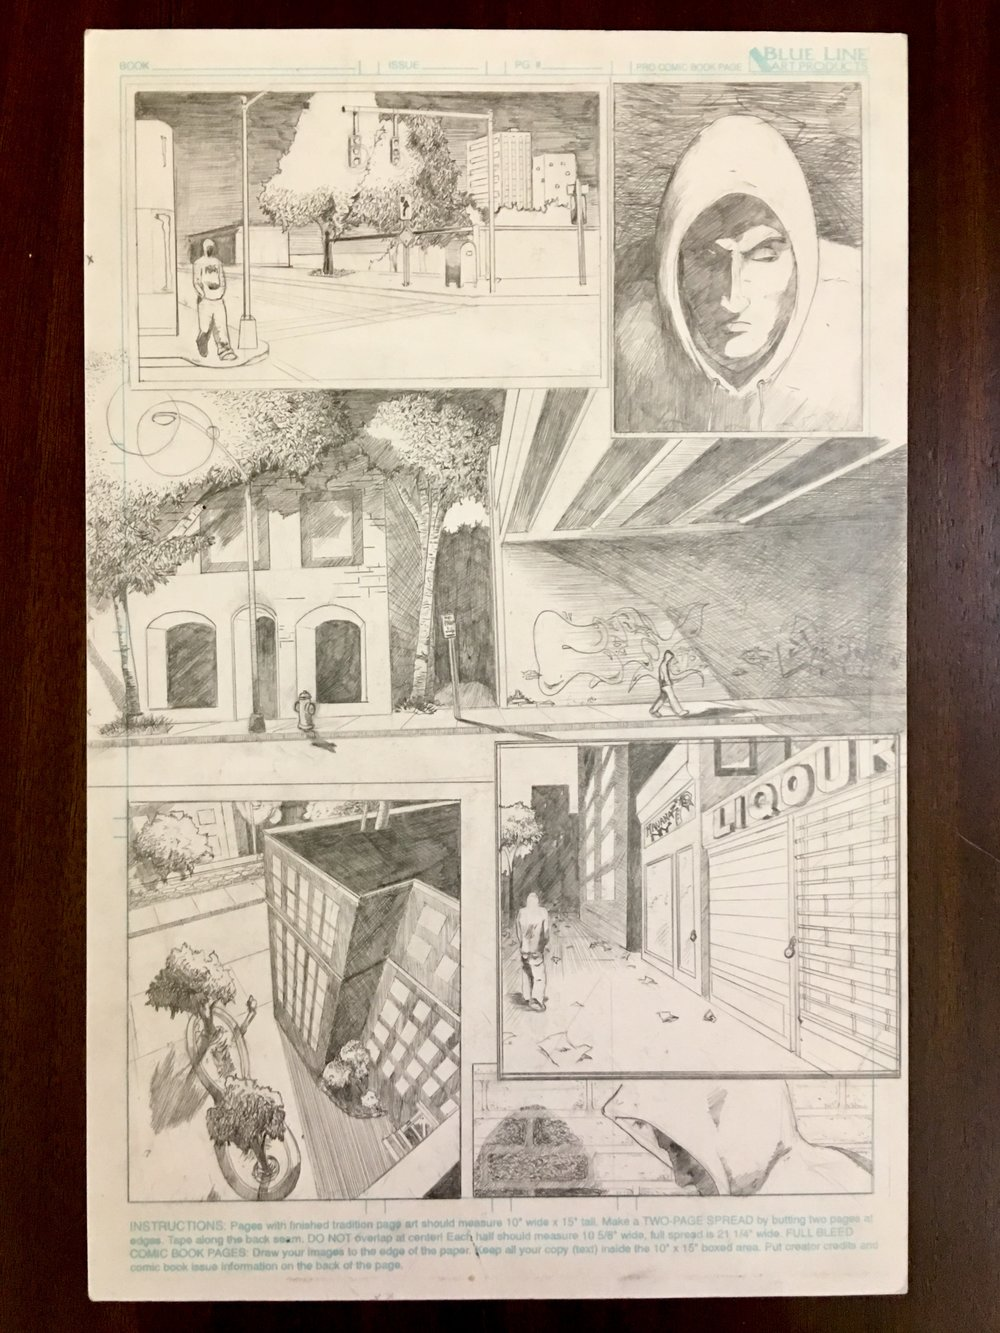 Original page 1 made shortly after graduation in 2002